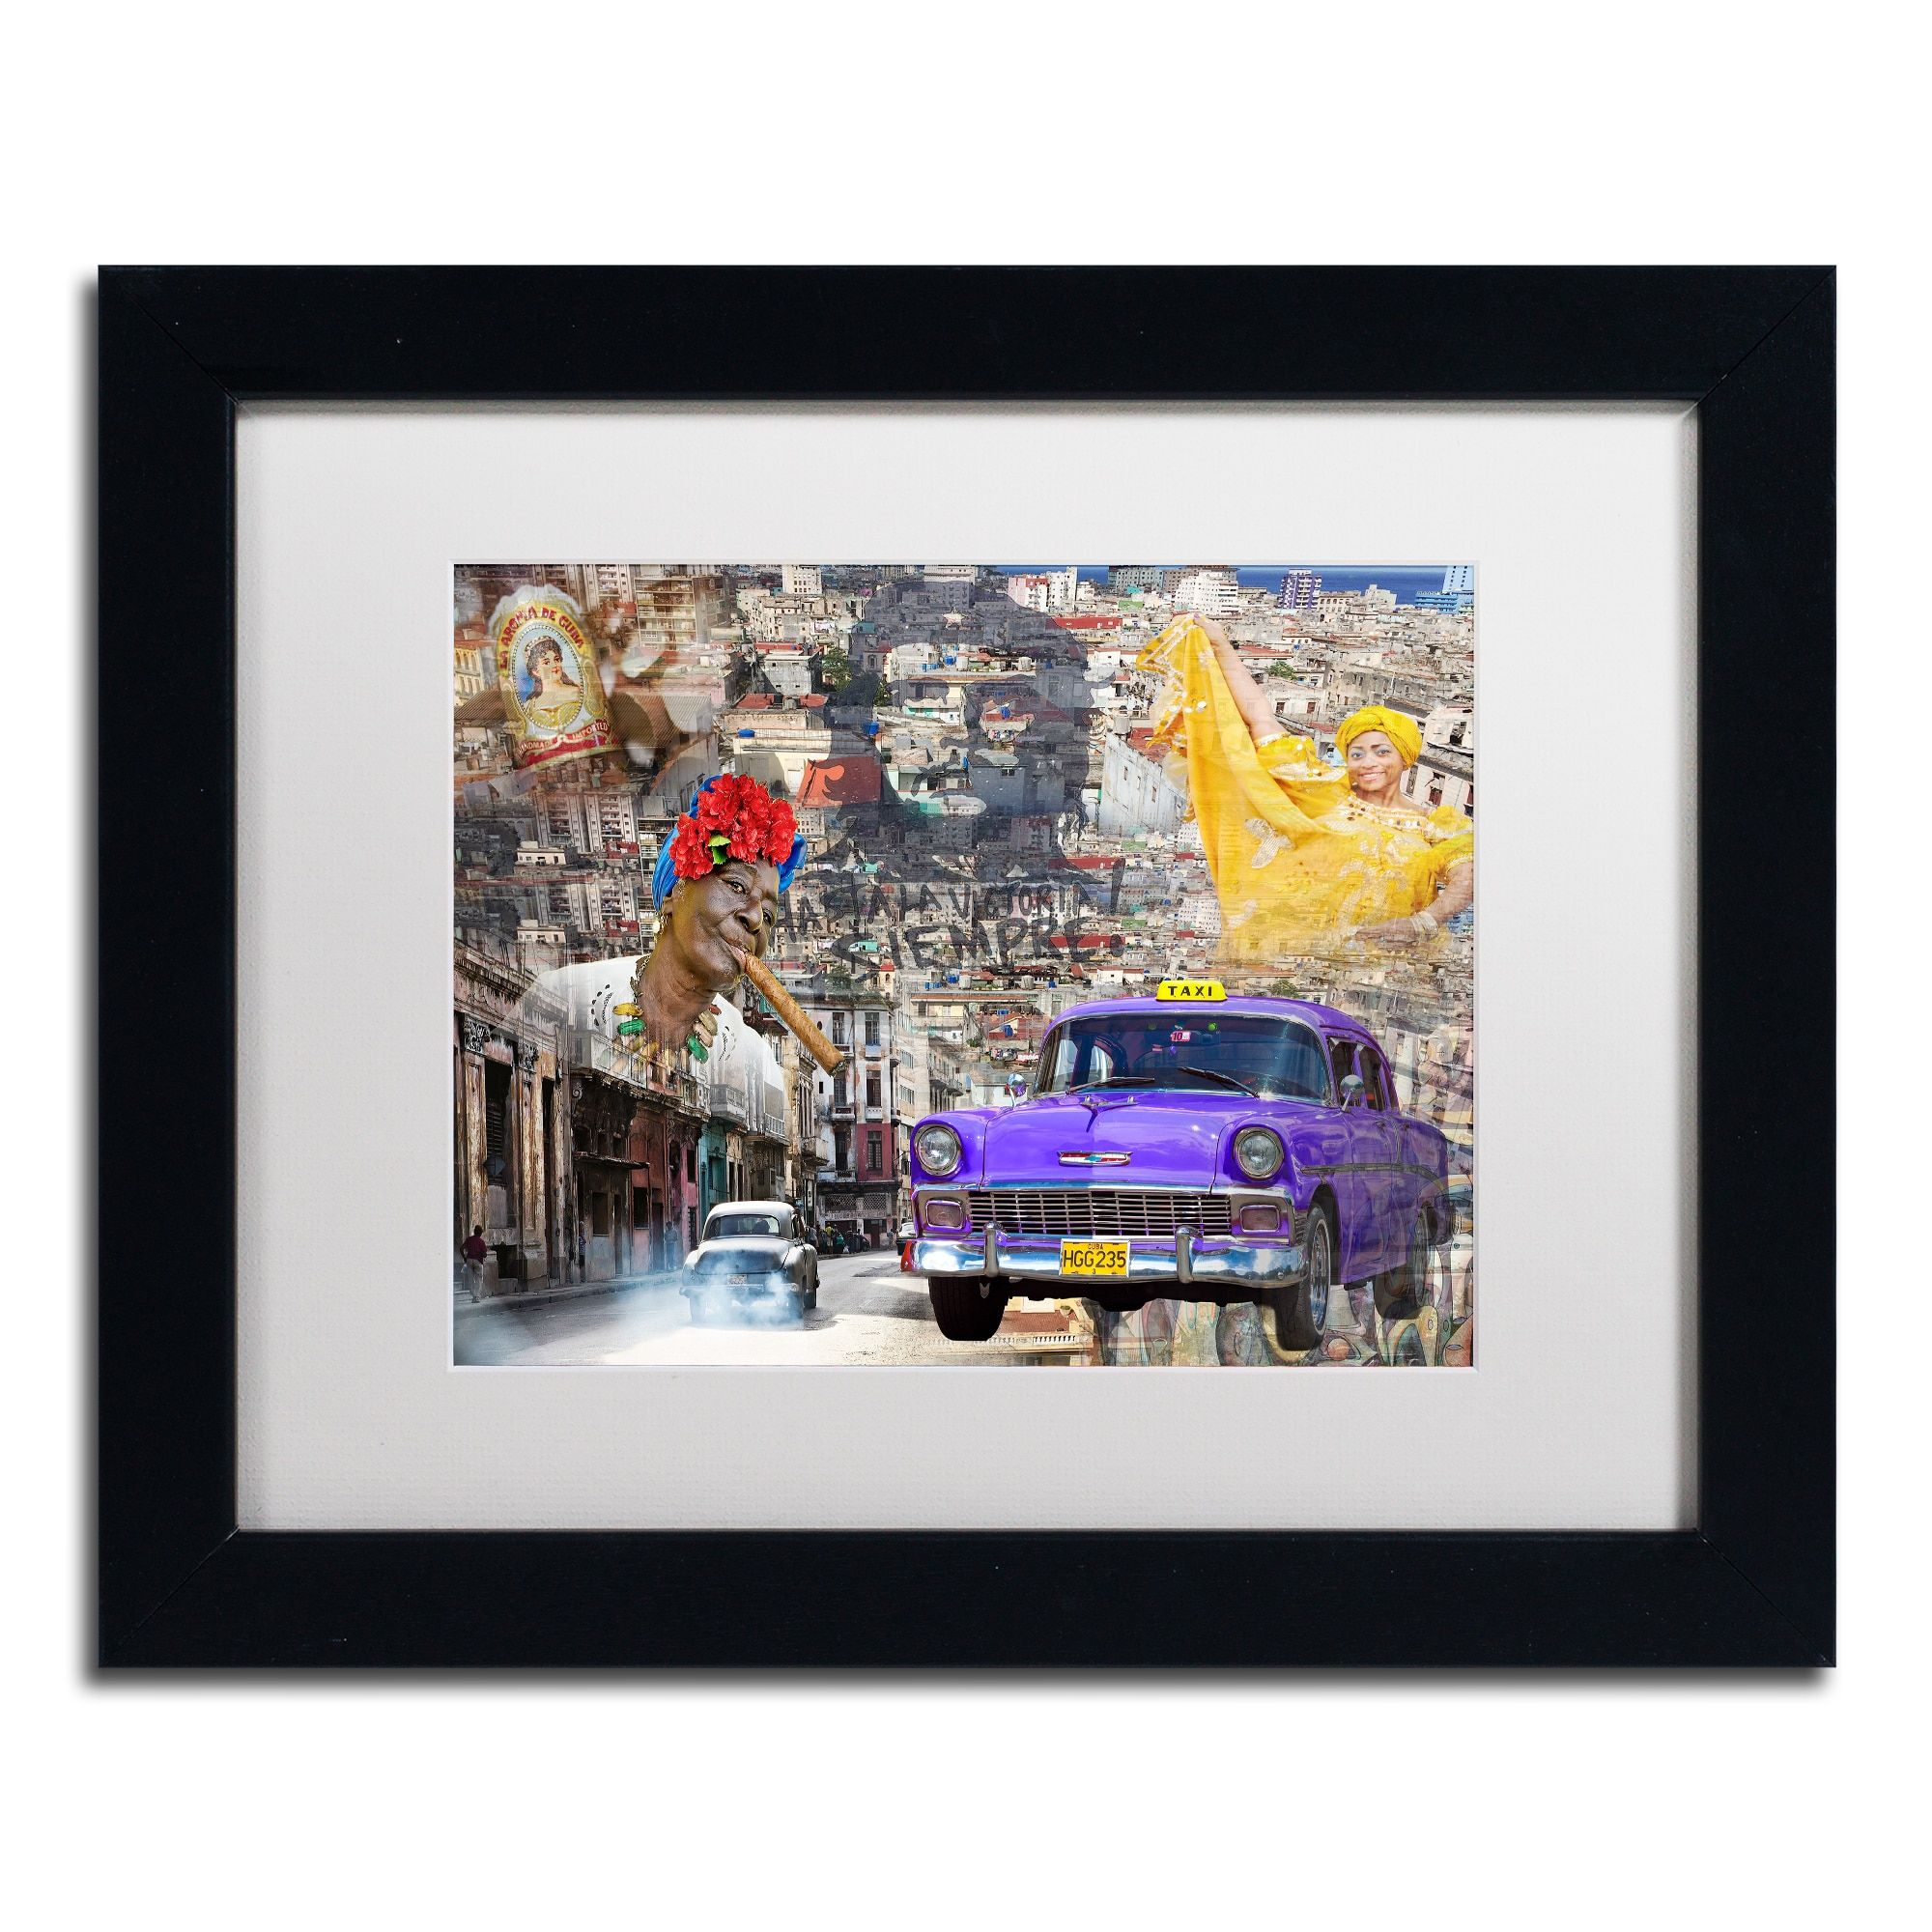 Alberto Lopez La Aroma De Cuba Matted Framed Art Products